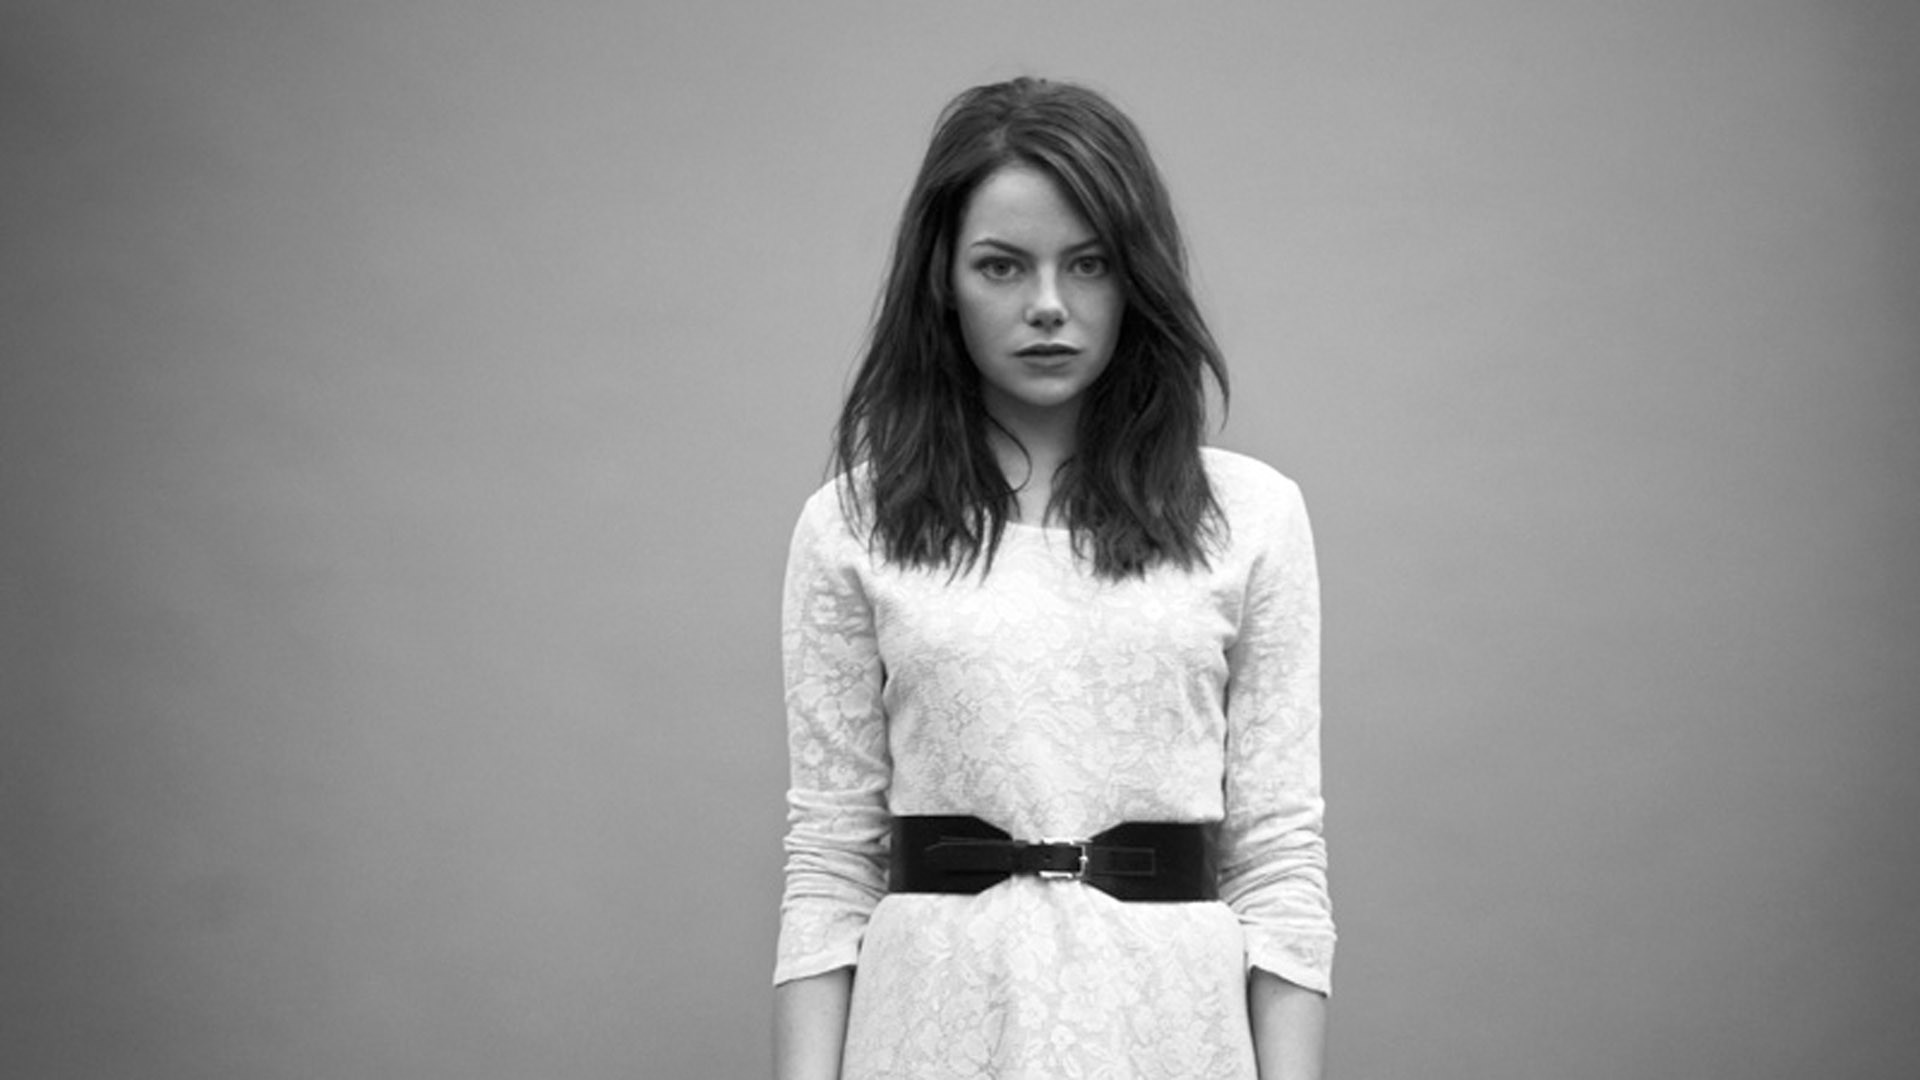 Emma Stone Wallpaper Hd 75 Pictures